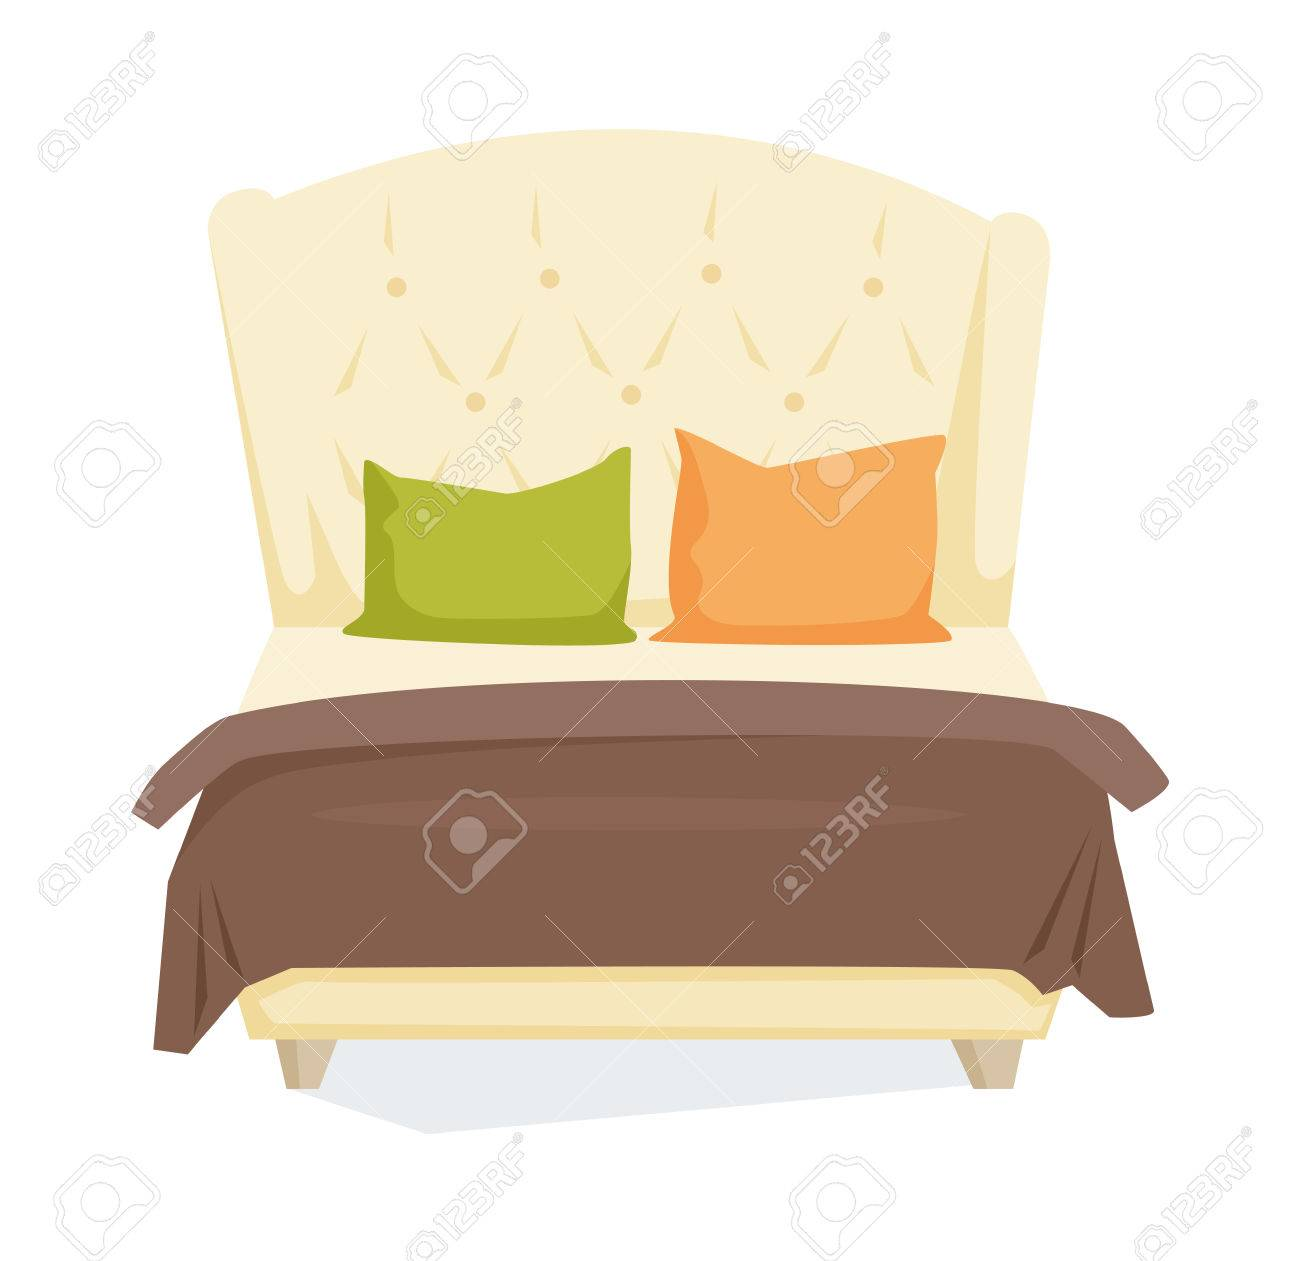 Double Bed And Pillow With Blanket In Modern Style. Double Bed ... for Pillow And Blanket Clipart  45hul